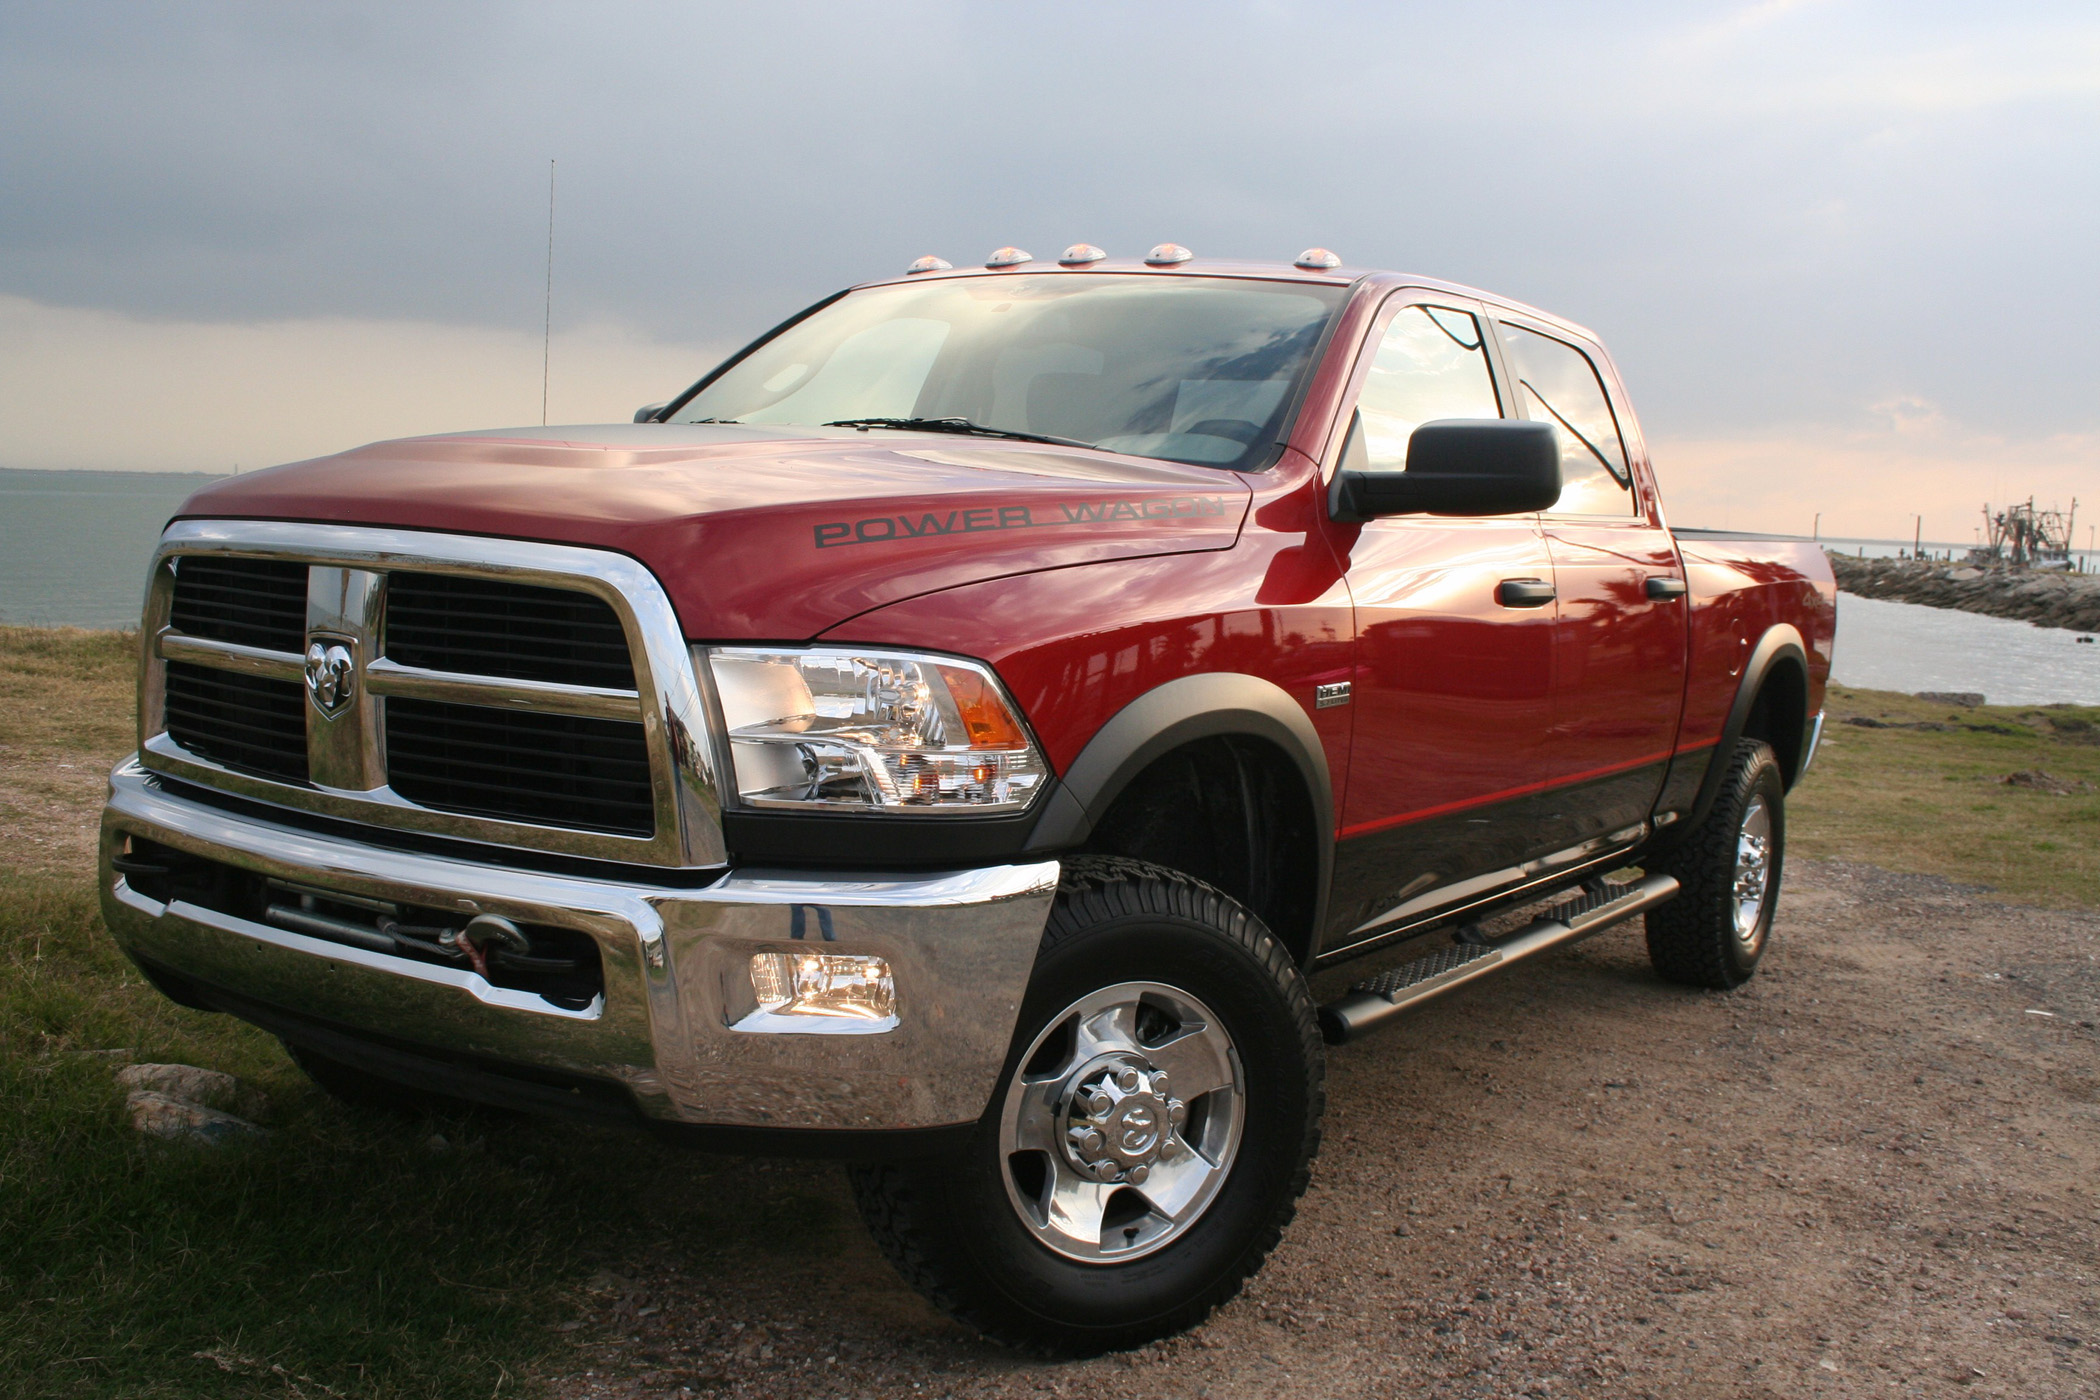 2011 ram power wagon built to handle off road challenges truck talk groovecar. Black Bedroom Furniture Sets. Home Design Ideas